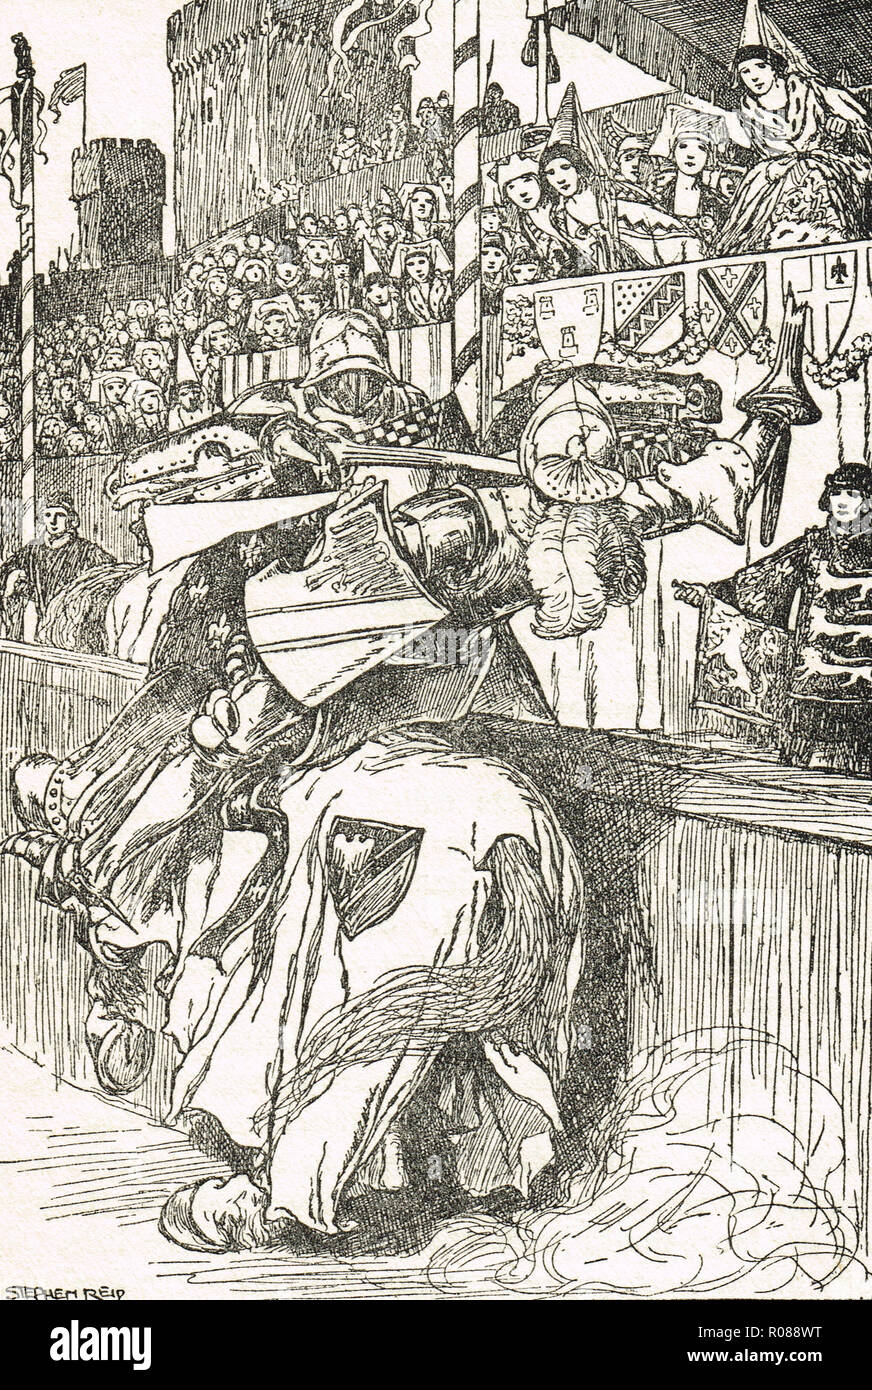 Knight struck by a lance, Medieval jousting tournament - Stock Image